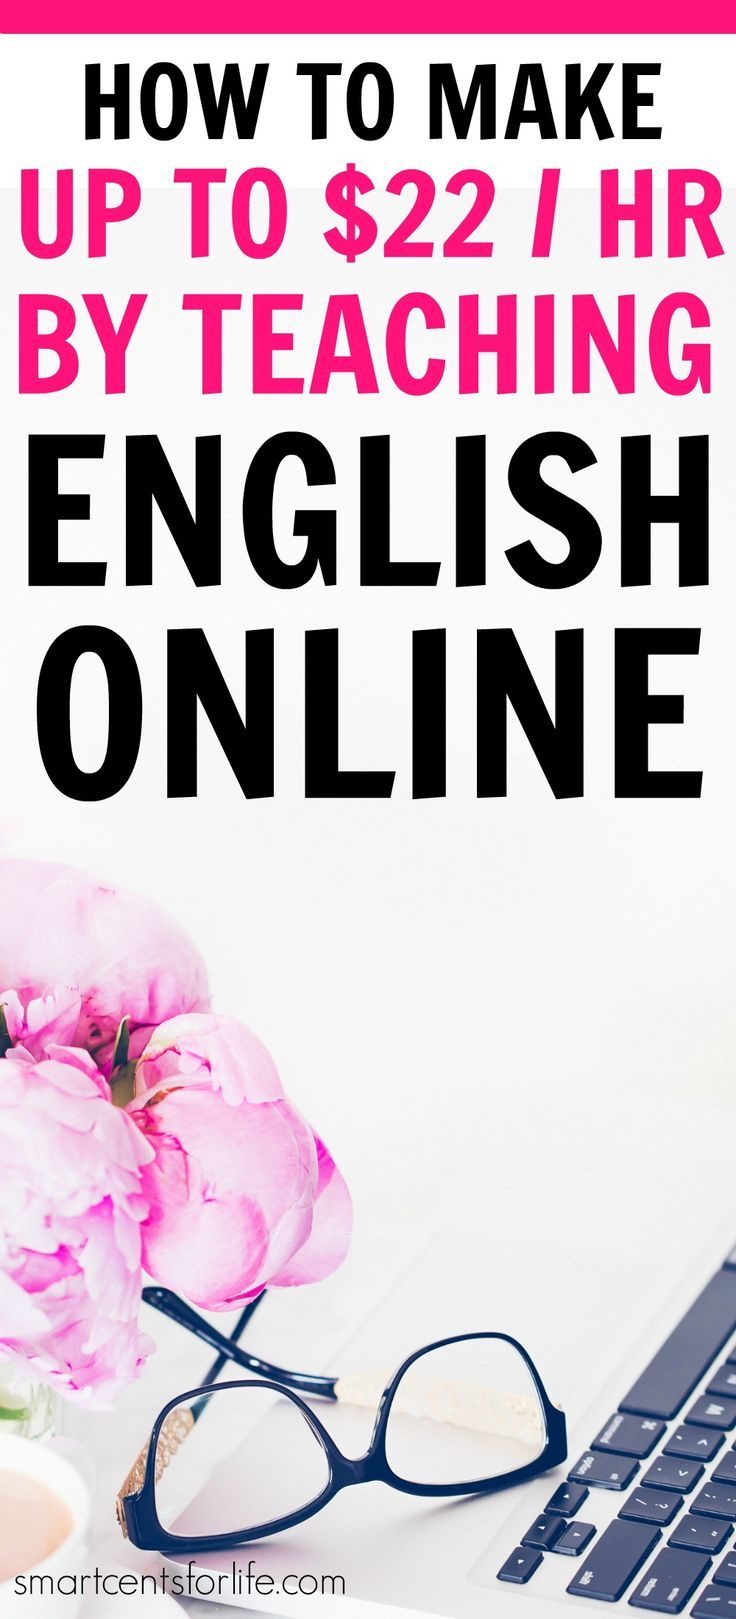 Teaching English online could be a rewarding career especially if you are looking for jobs with a flexible schedule and that pays well. You can work from home or anywhere! Find out how you can become an online English teacher and make up to $22 per hour. Make Money Online | Work From Home Jobs | Make Money